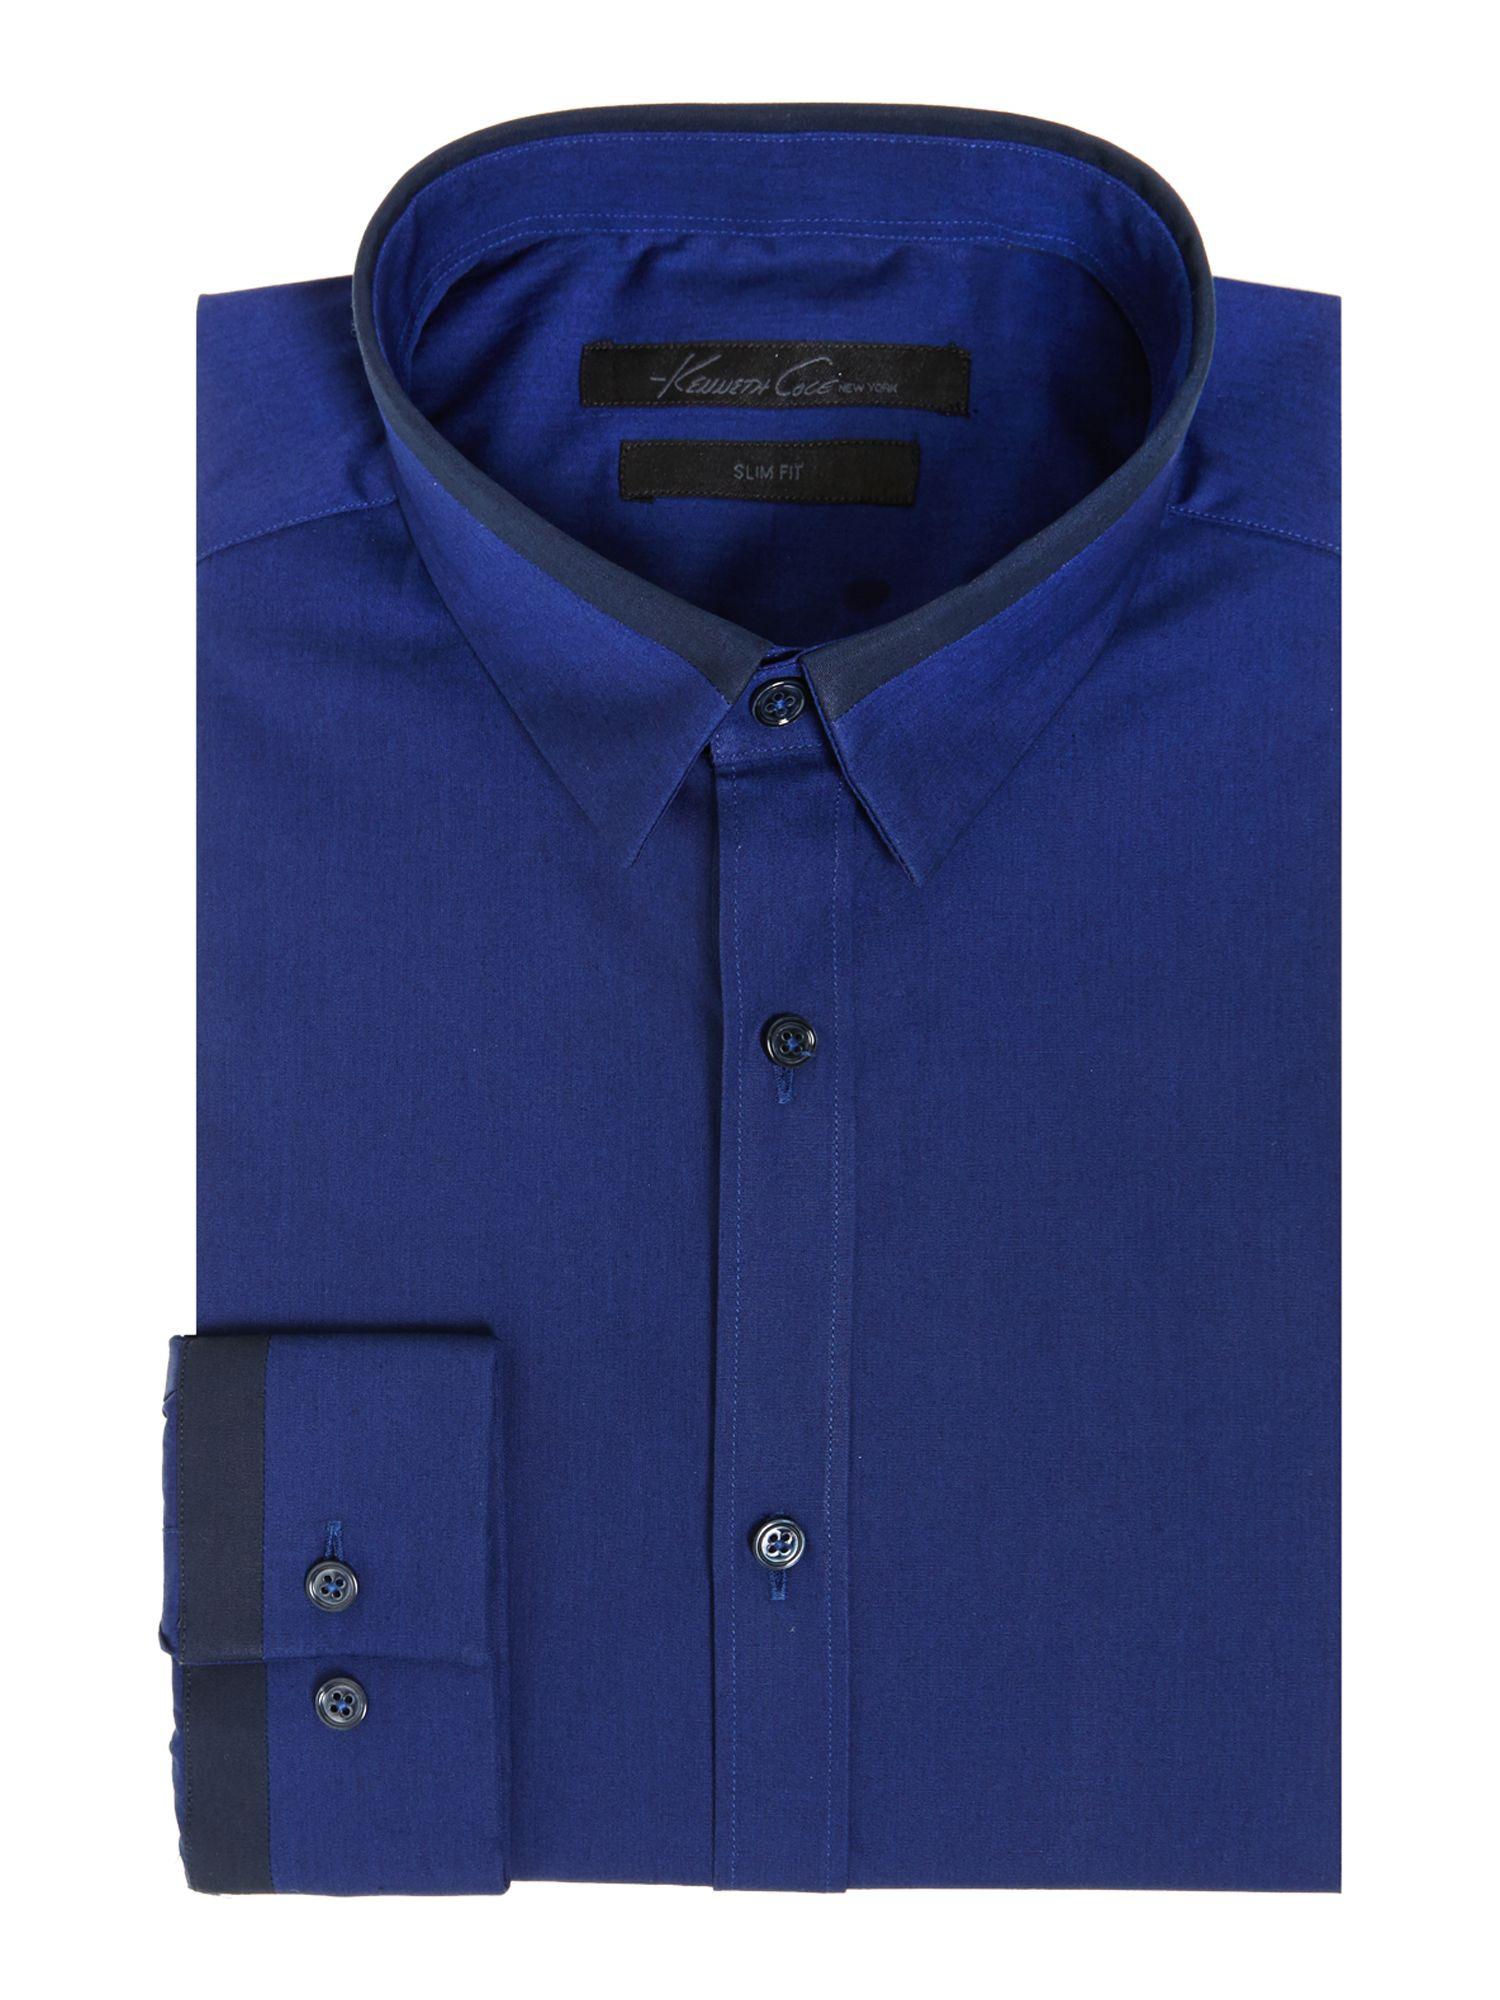 Grattan cuff and collar detail shirt